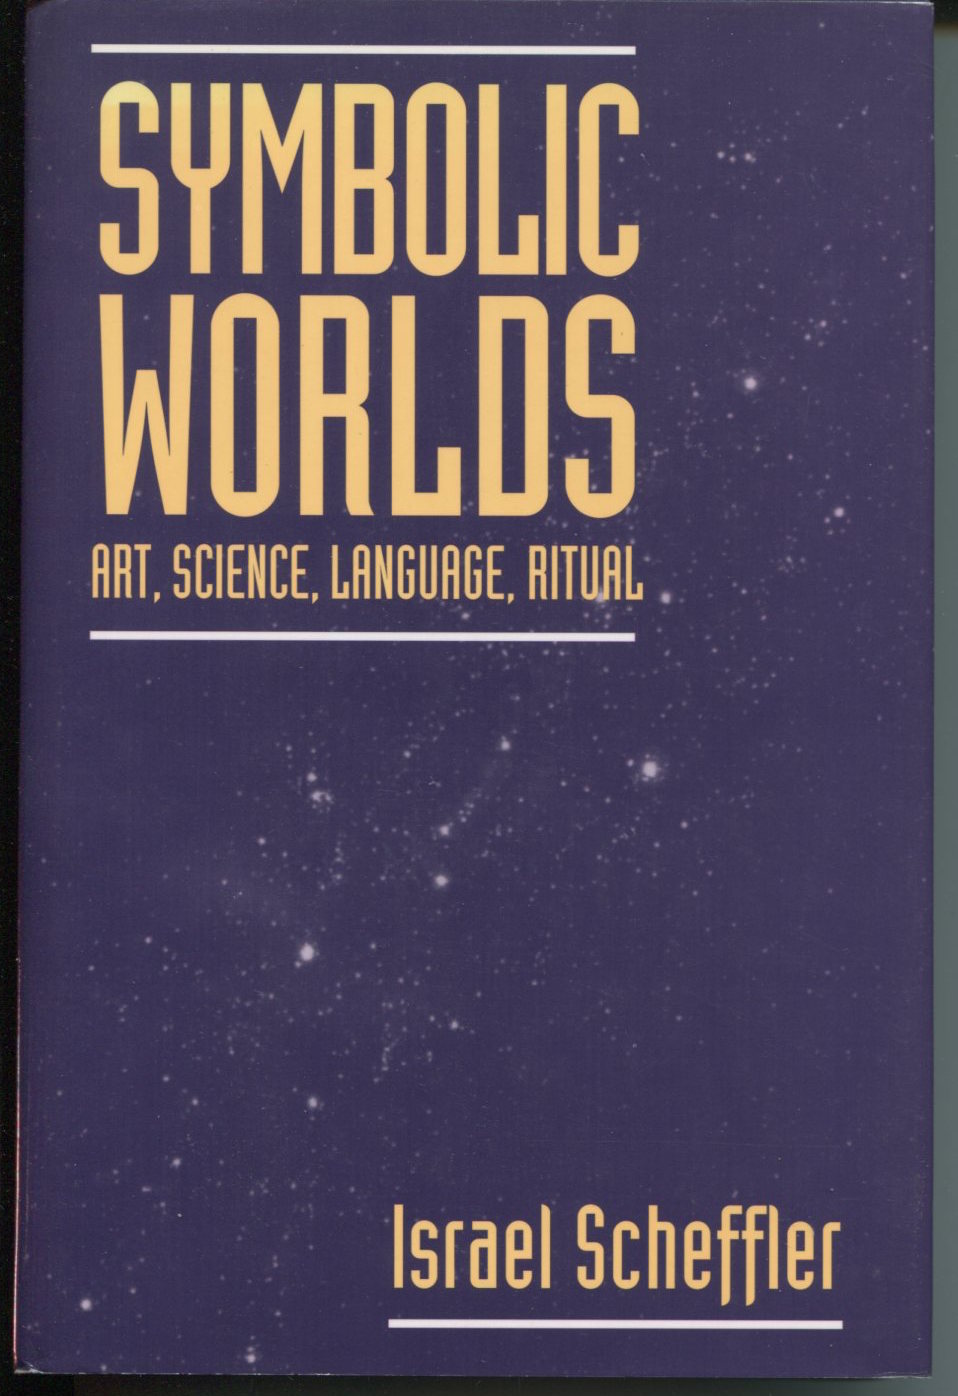 Symbolic Worlds. Art, Science, Language, Ritual.